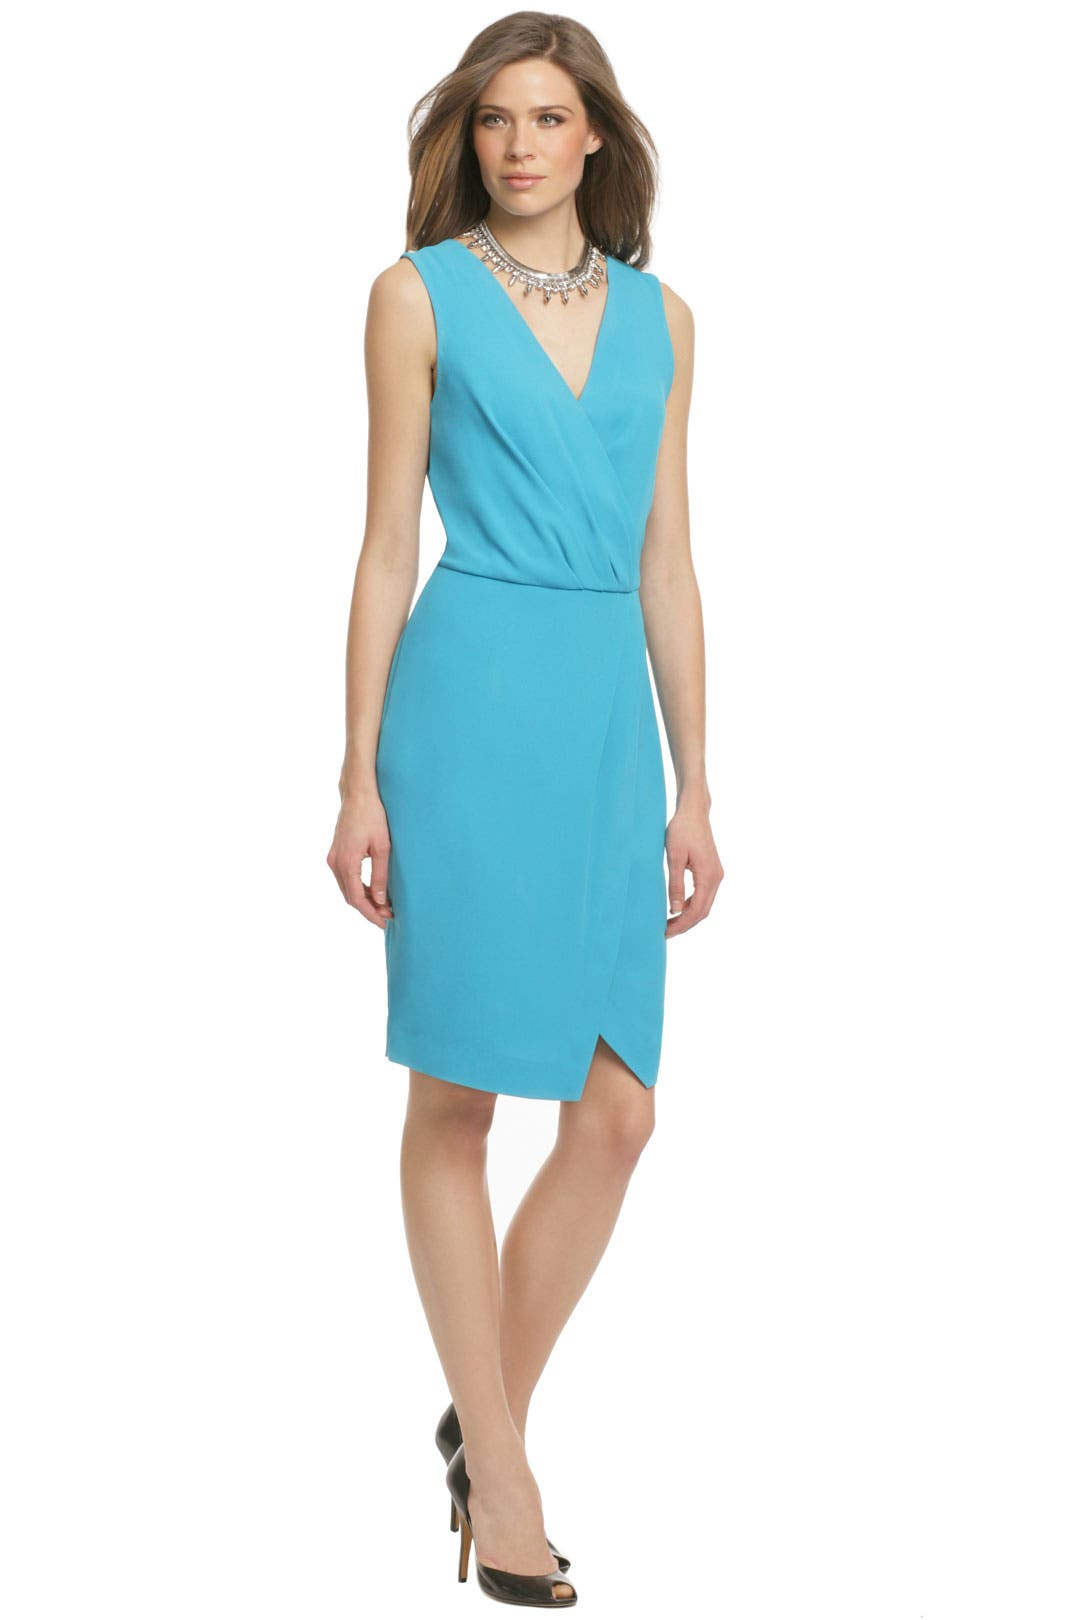 Below Freezing Dress by Rachel Roy